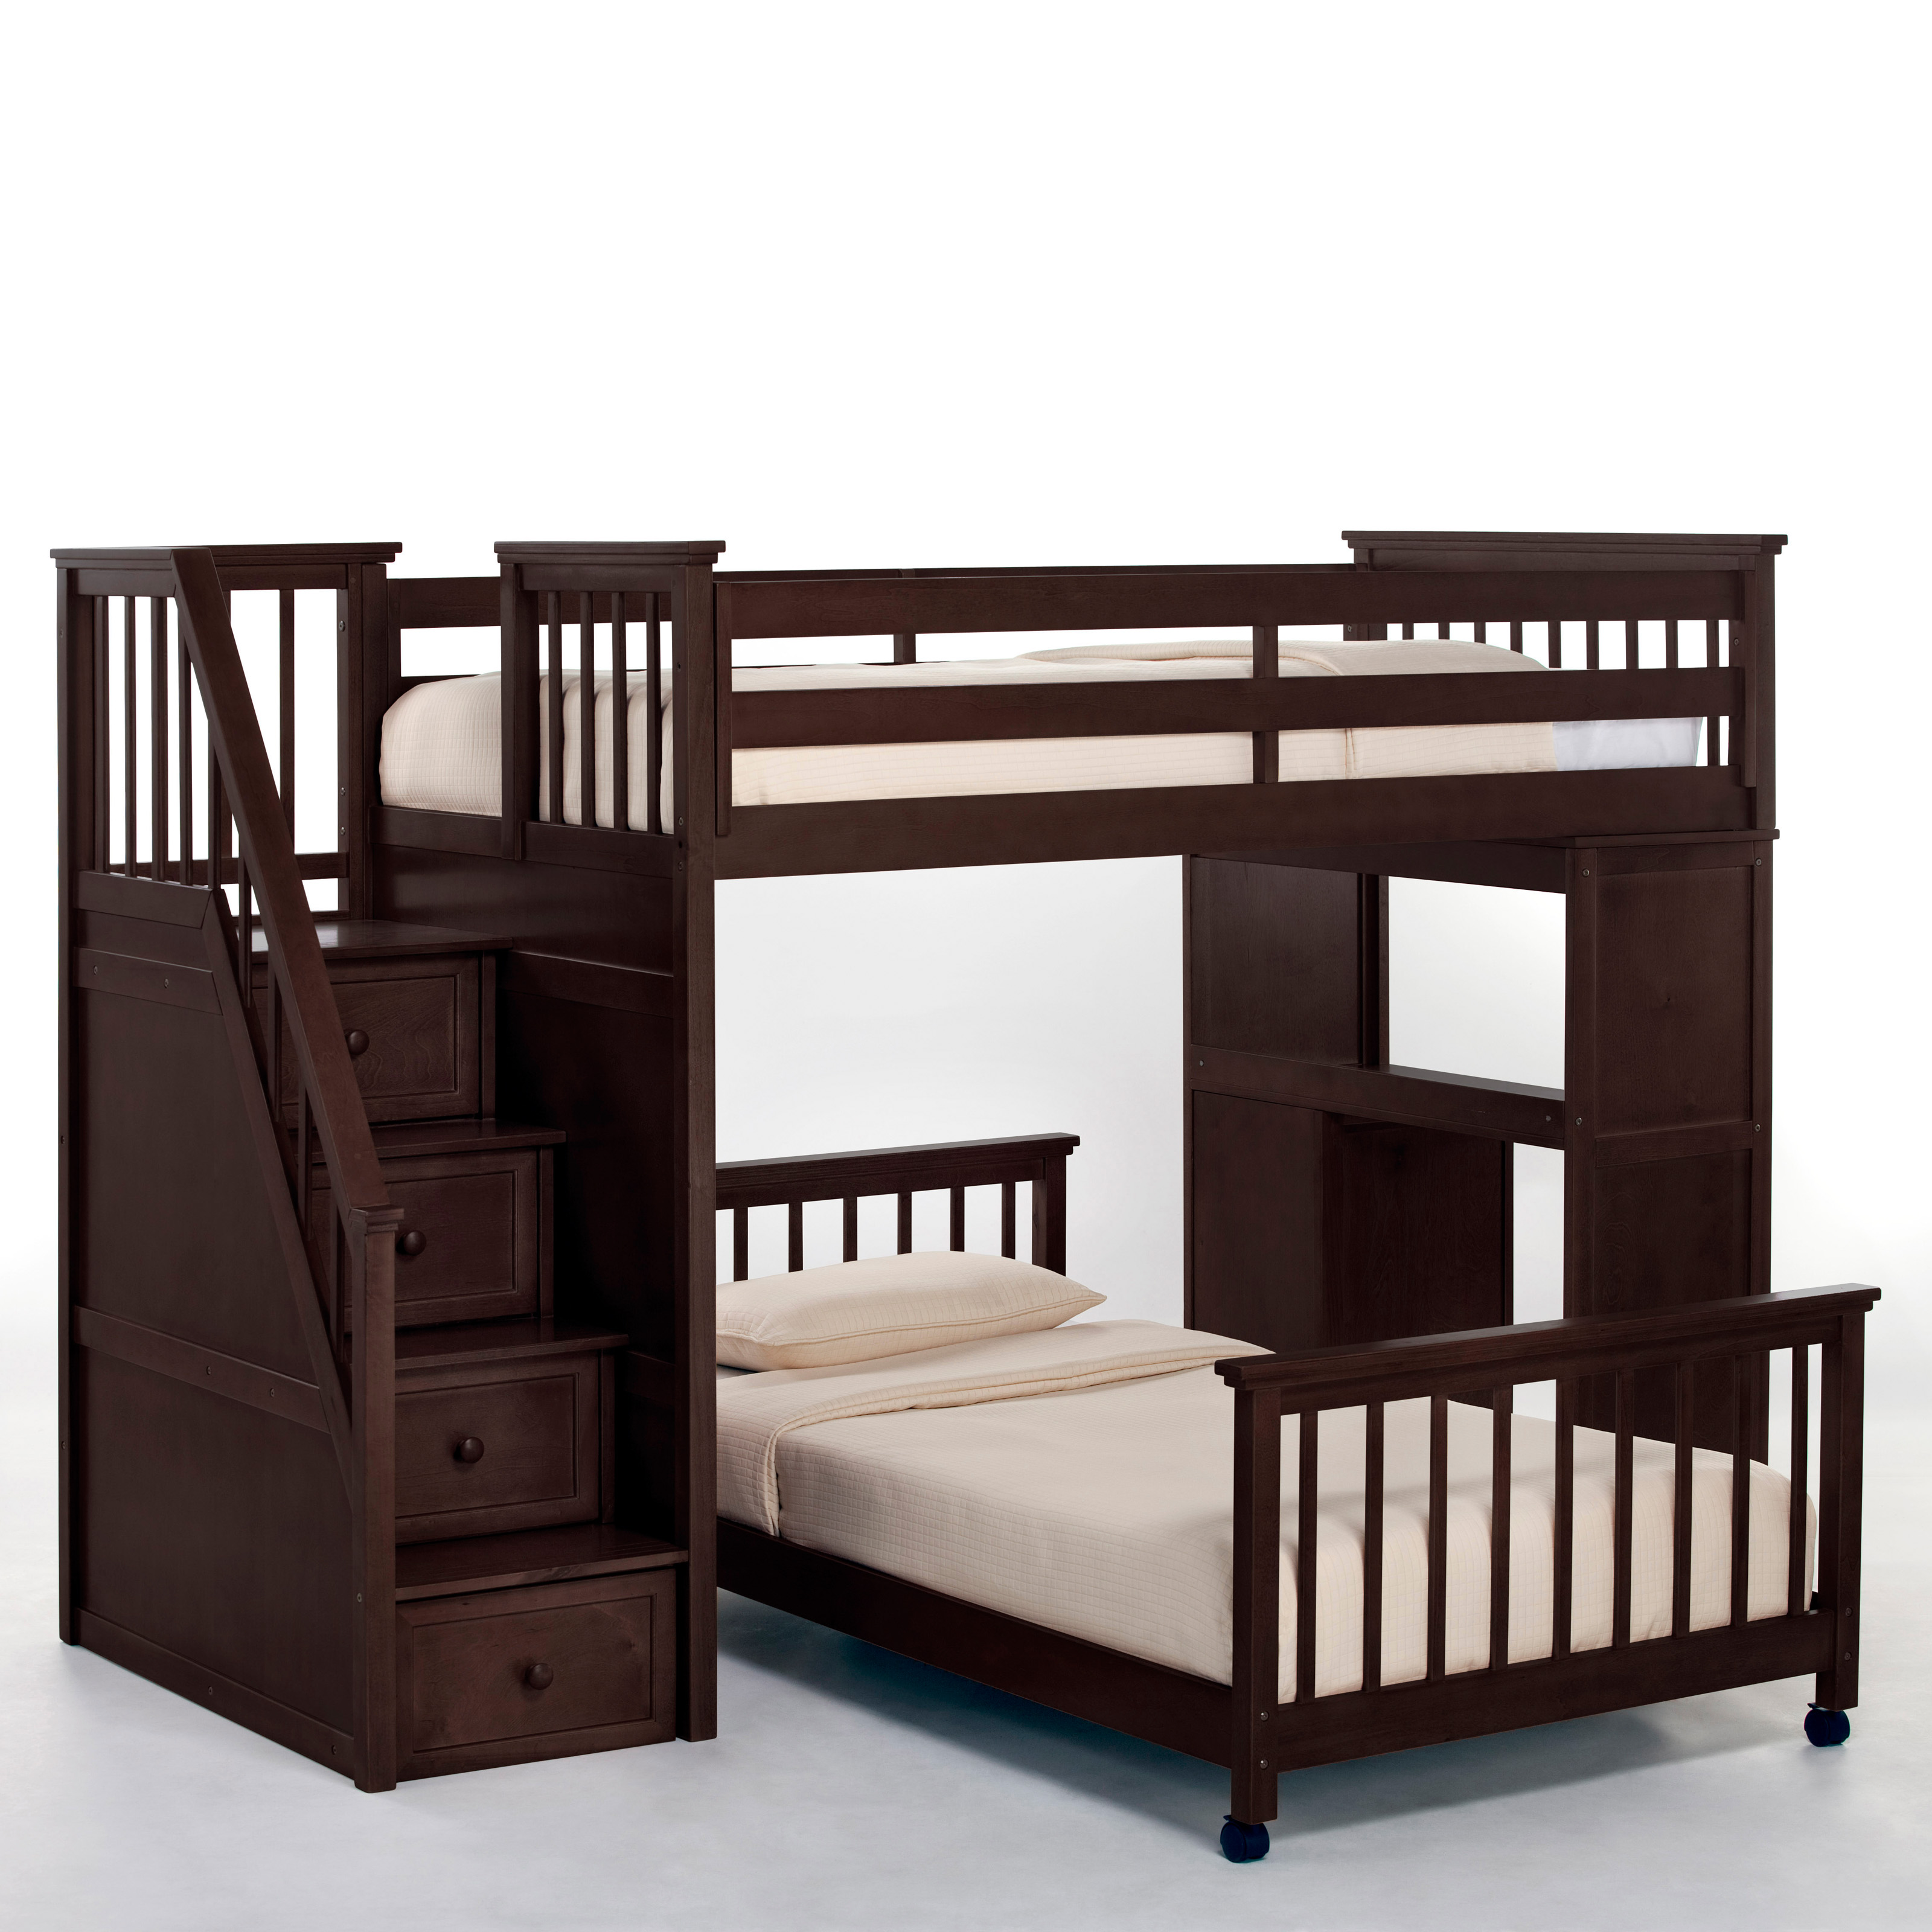 Kids Beds With Stairs - Ne kids schoolhouse stairway loft bed chocolate bunk beds loft beds at hayneedle